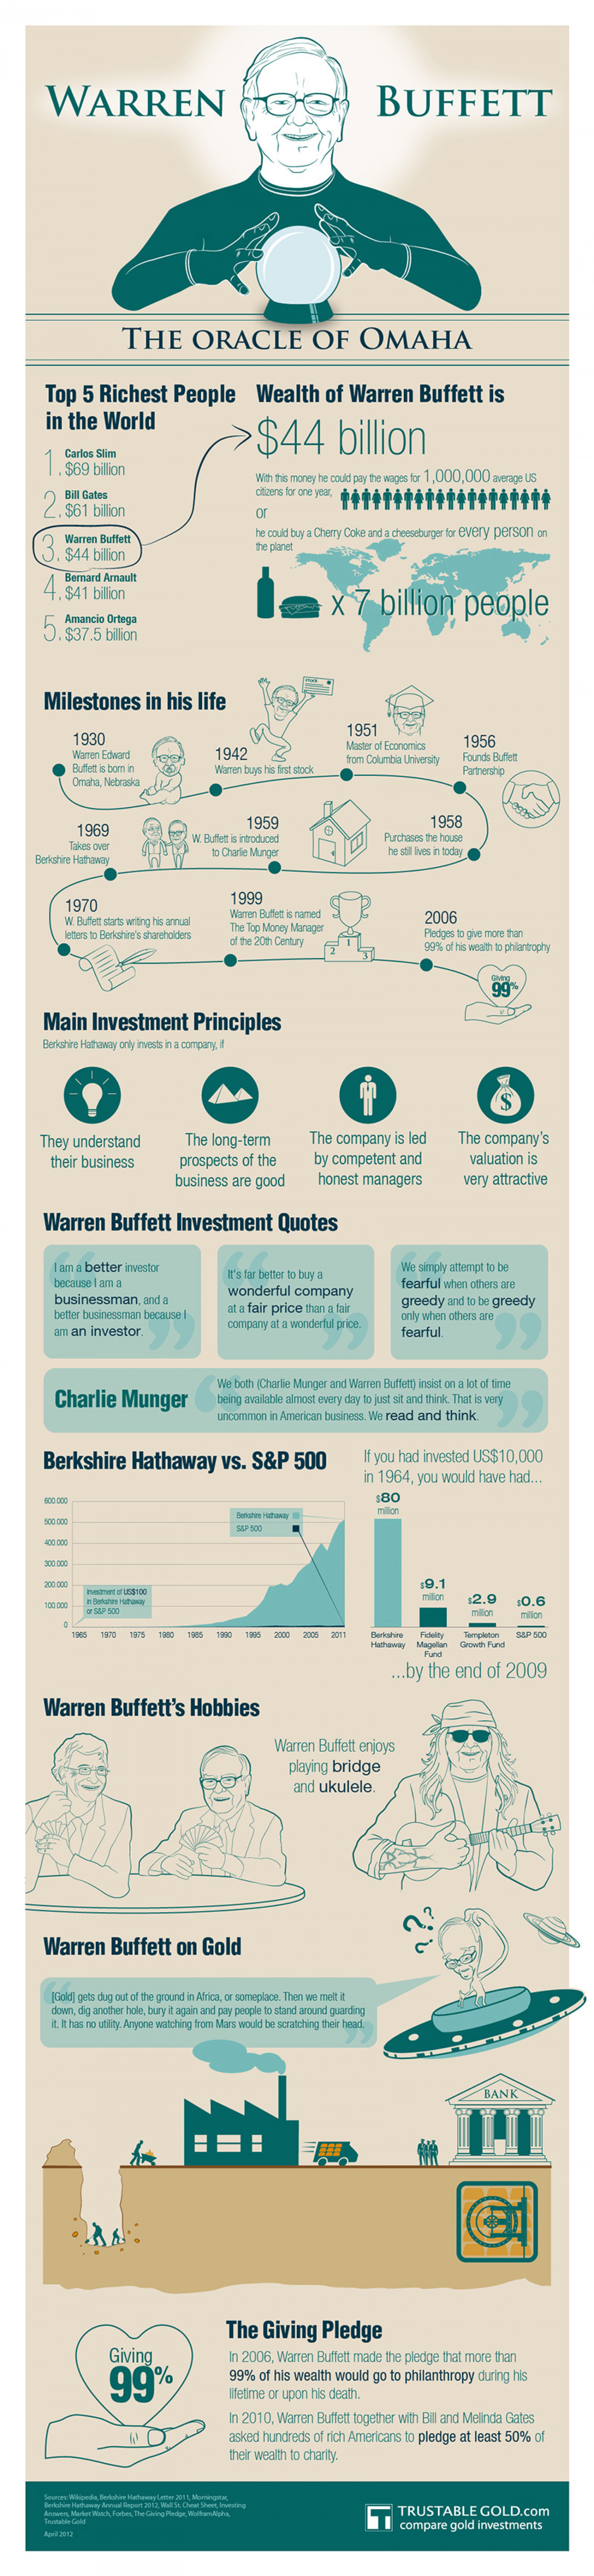 Warren Buffett Infographic Infographic